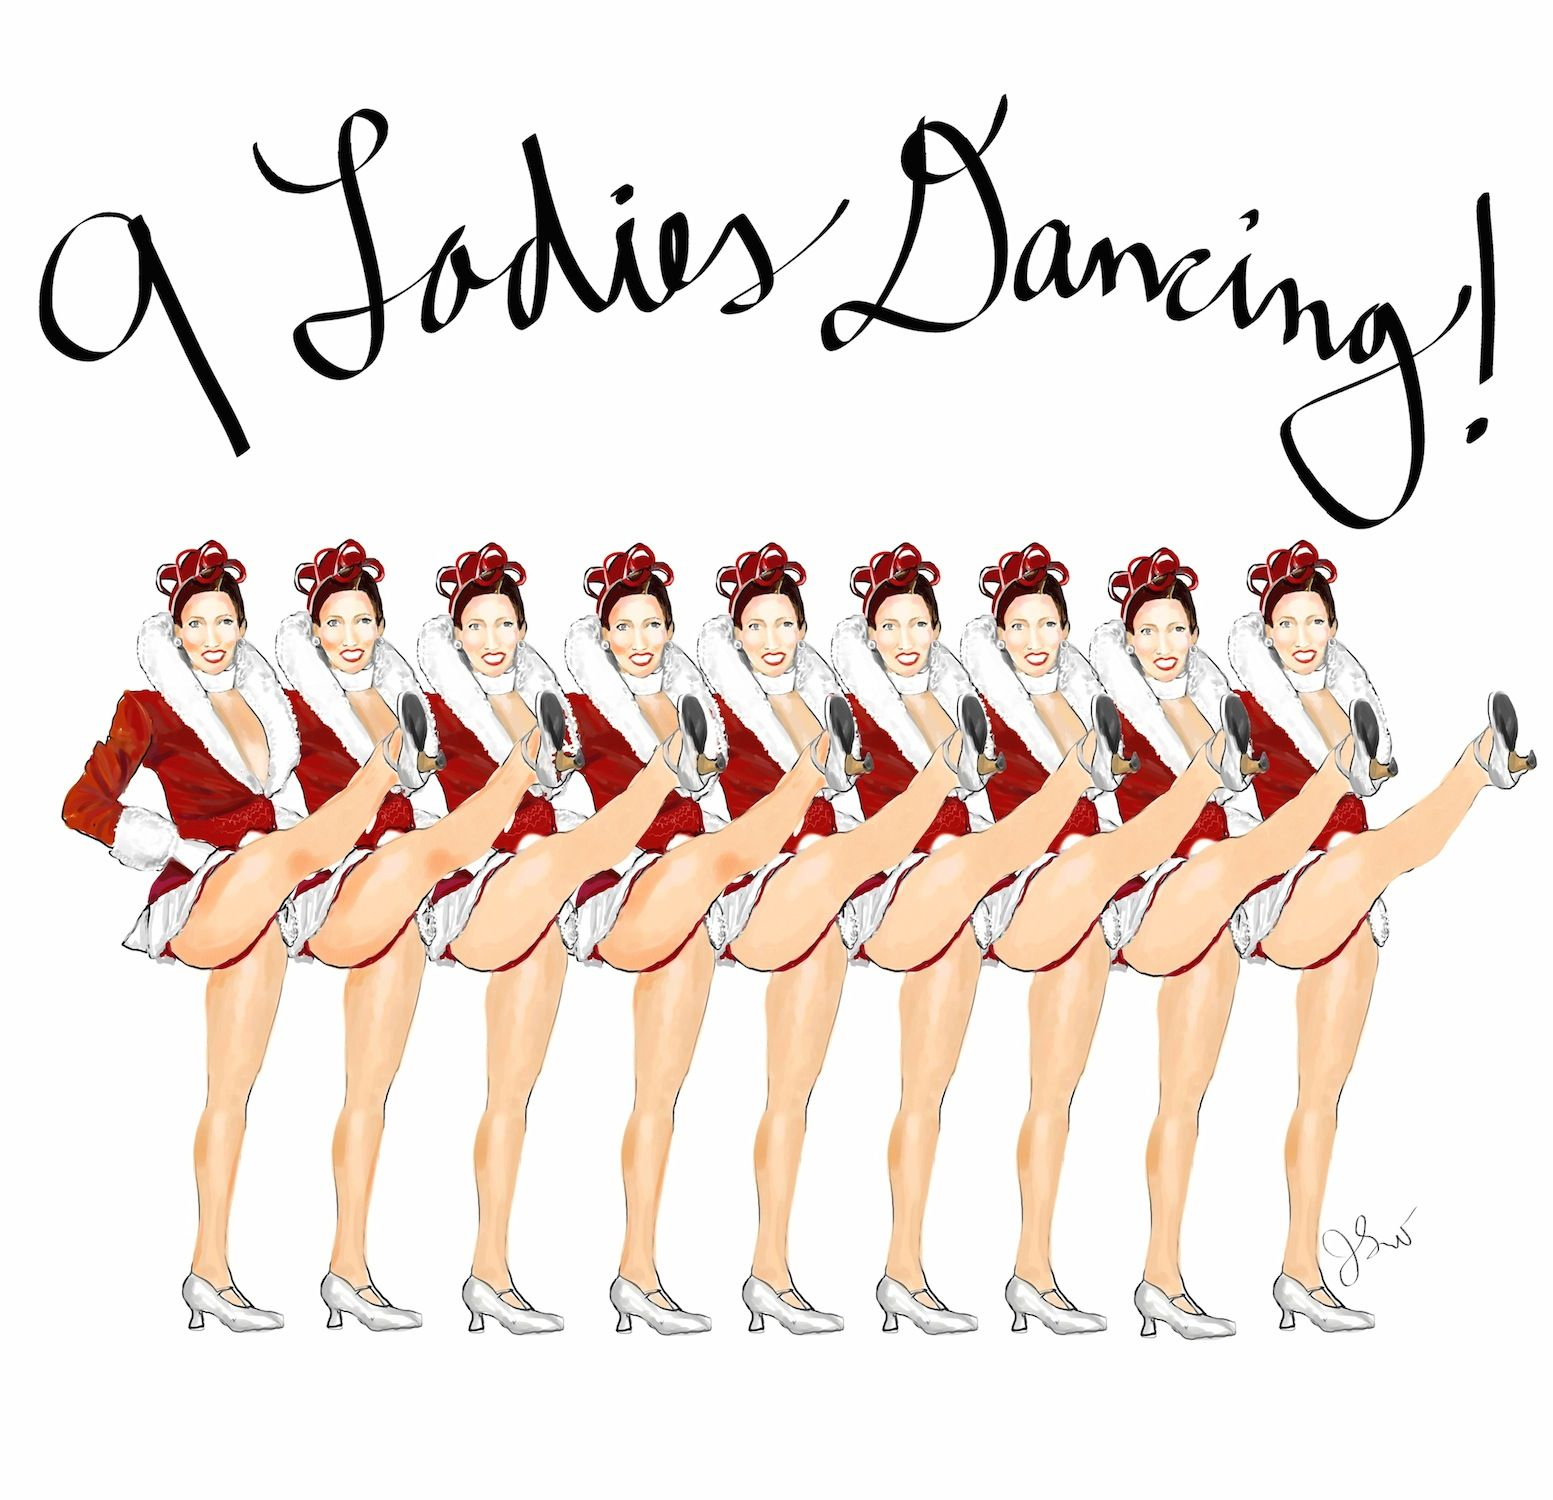 medium resolution of from thefrancofly com s 12 days of christmas 9 ladies dancing radio city rockettes humor christmas carol